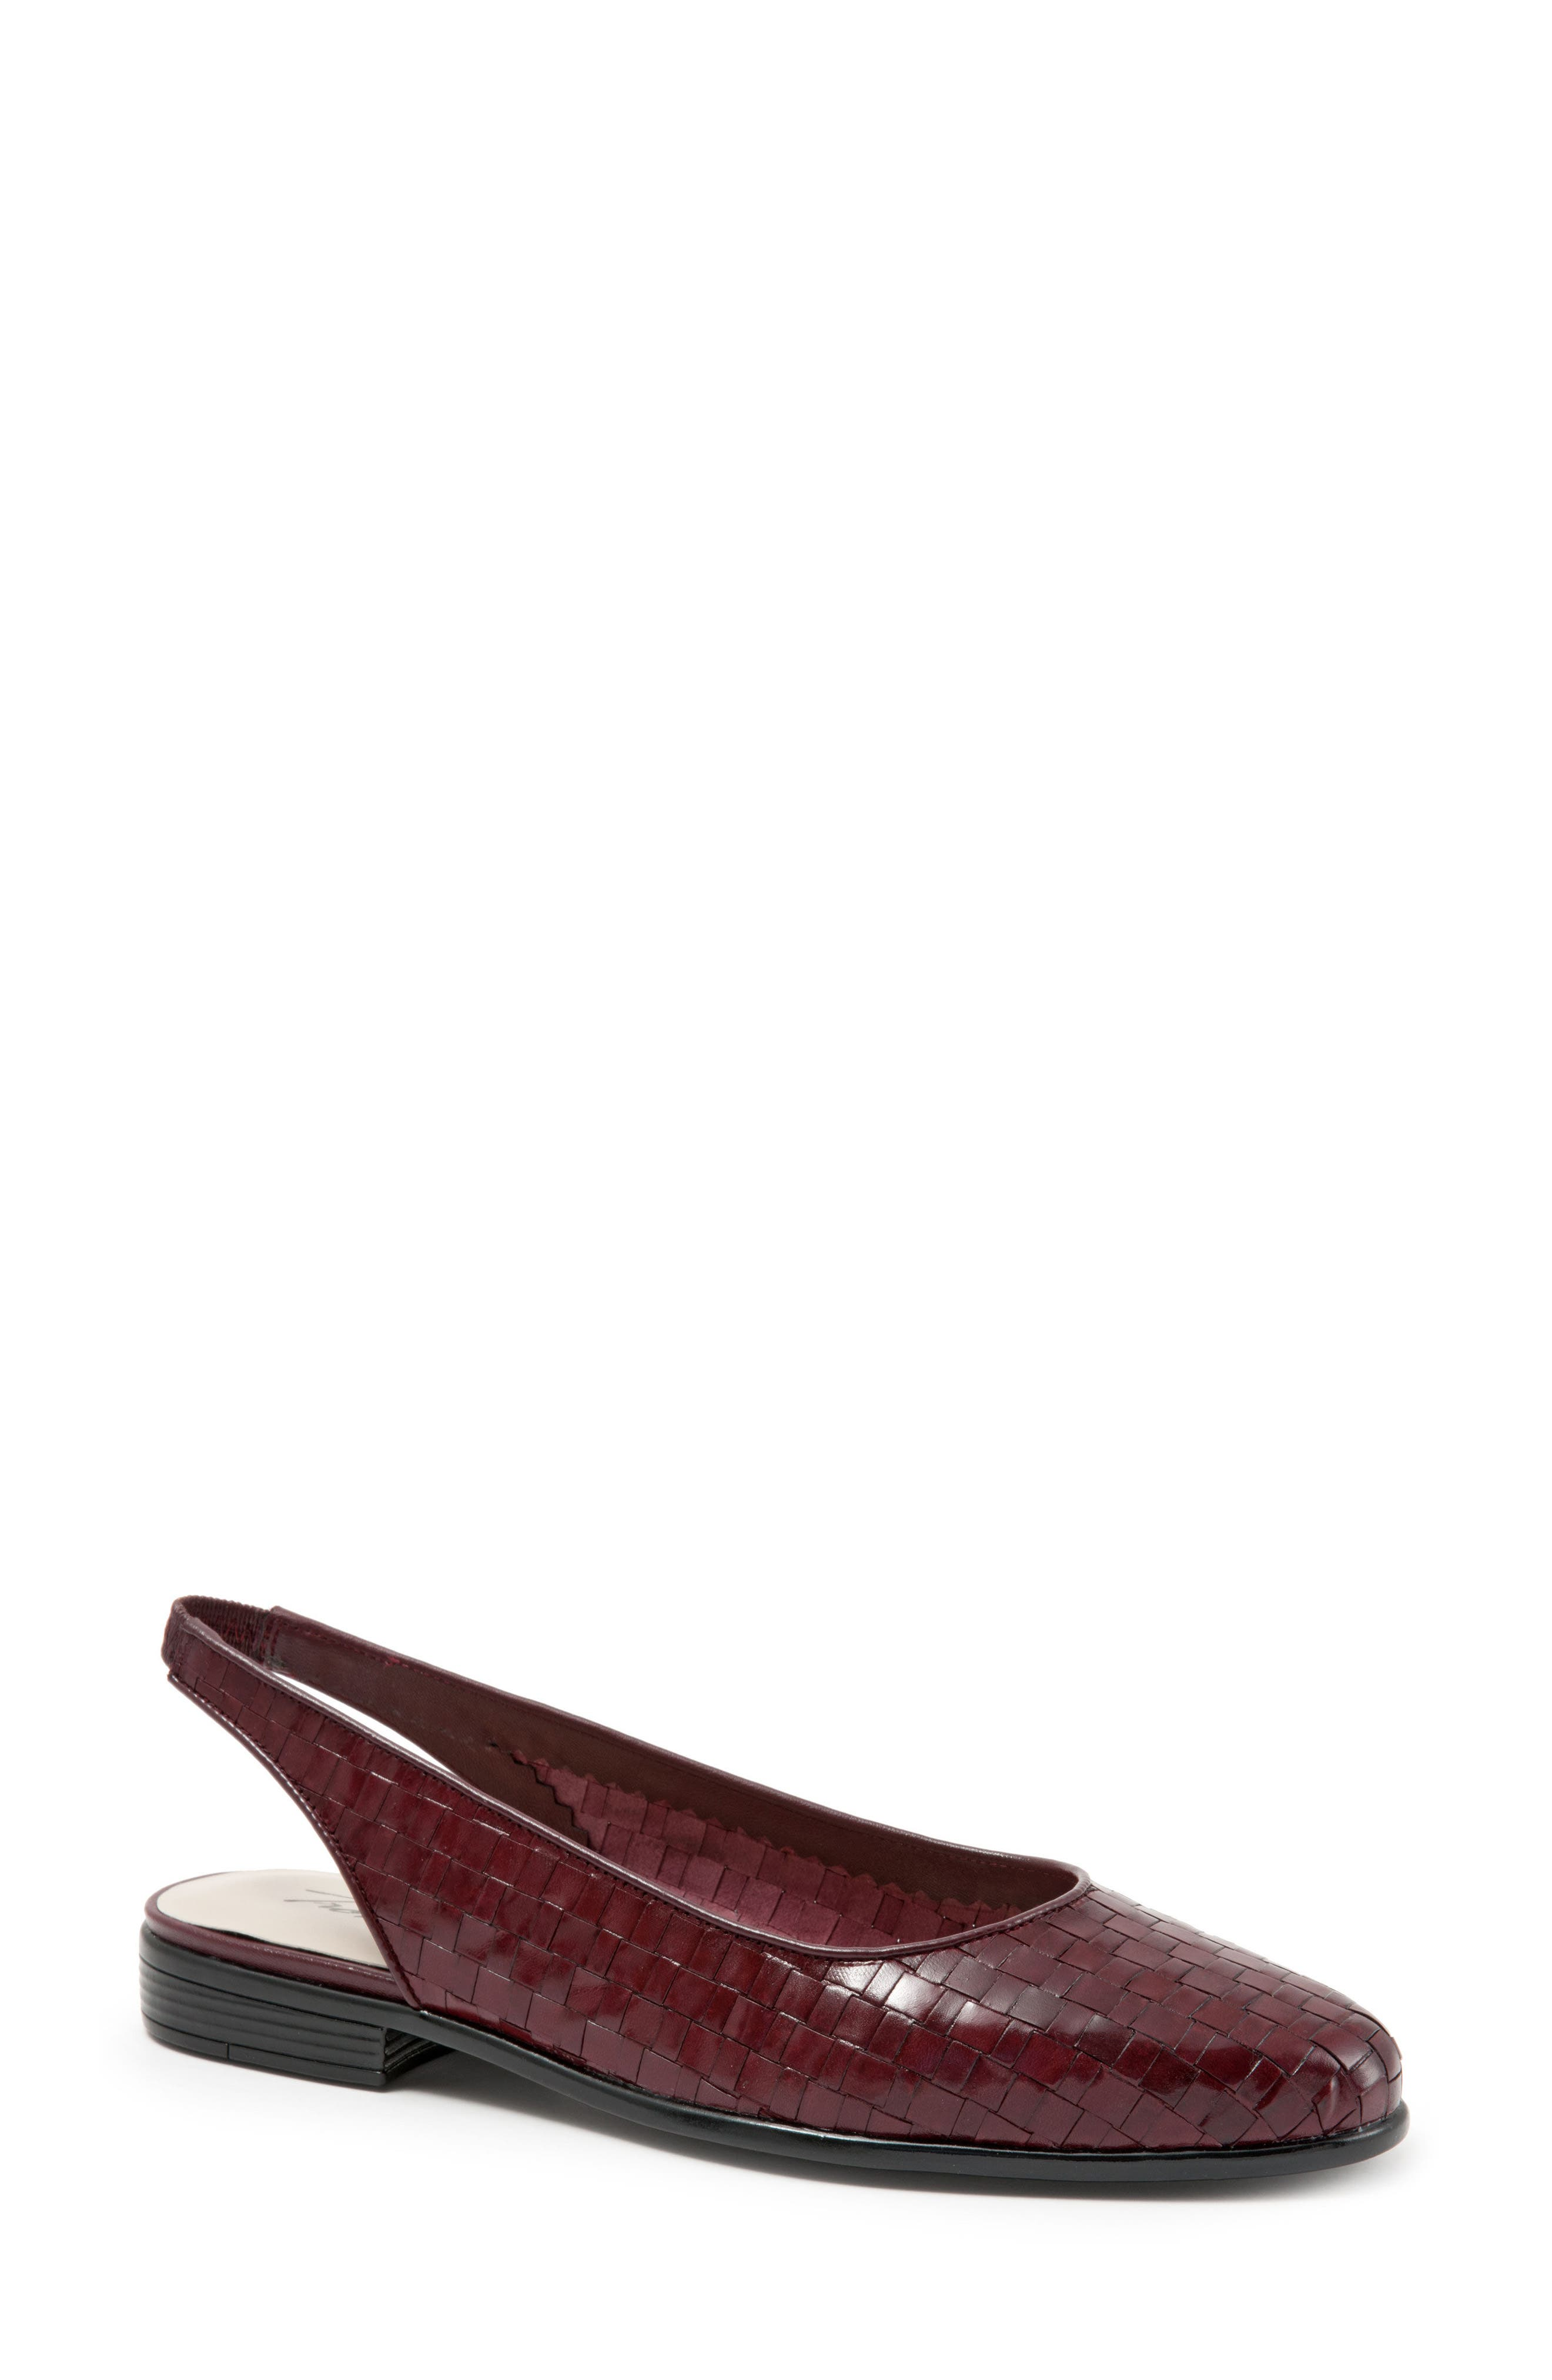 Main Image - Trotters Lucy Slingback Flat (Women)